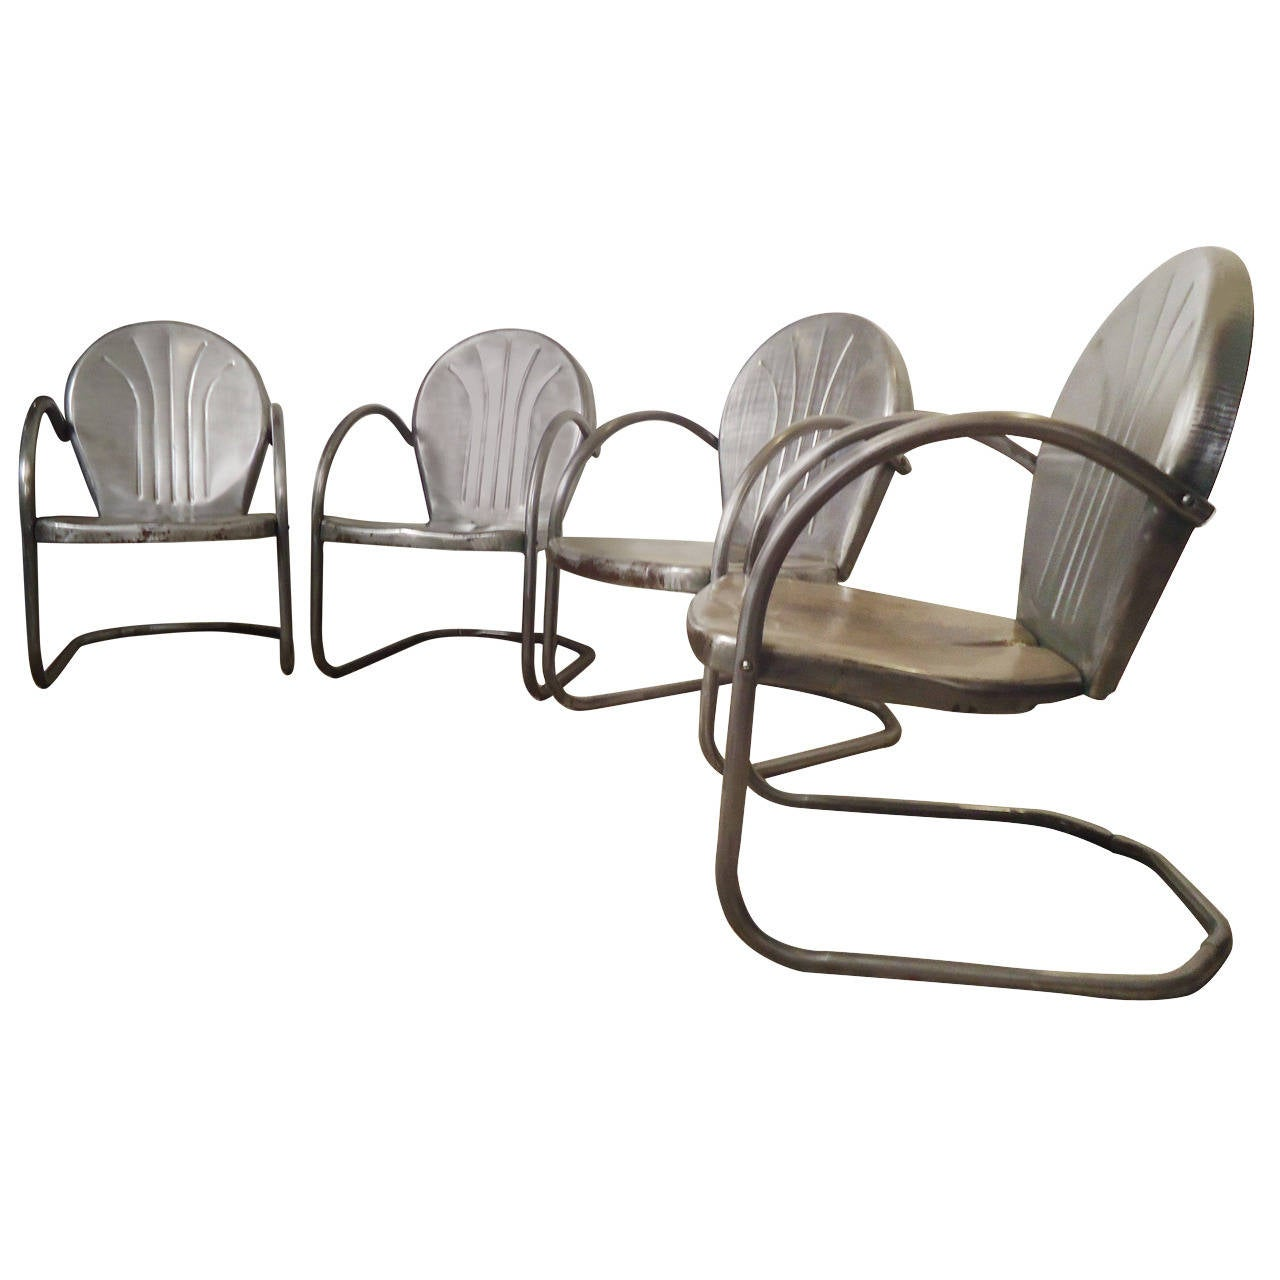 this handsome bare metal patio chairs is no longer available